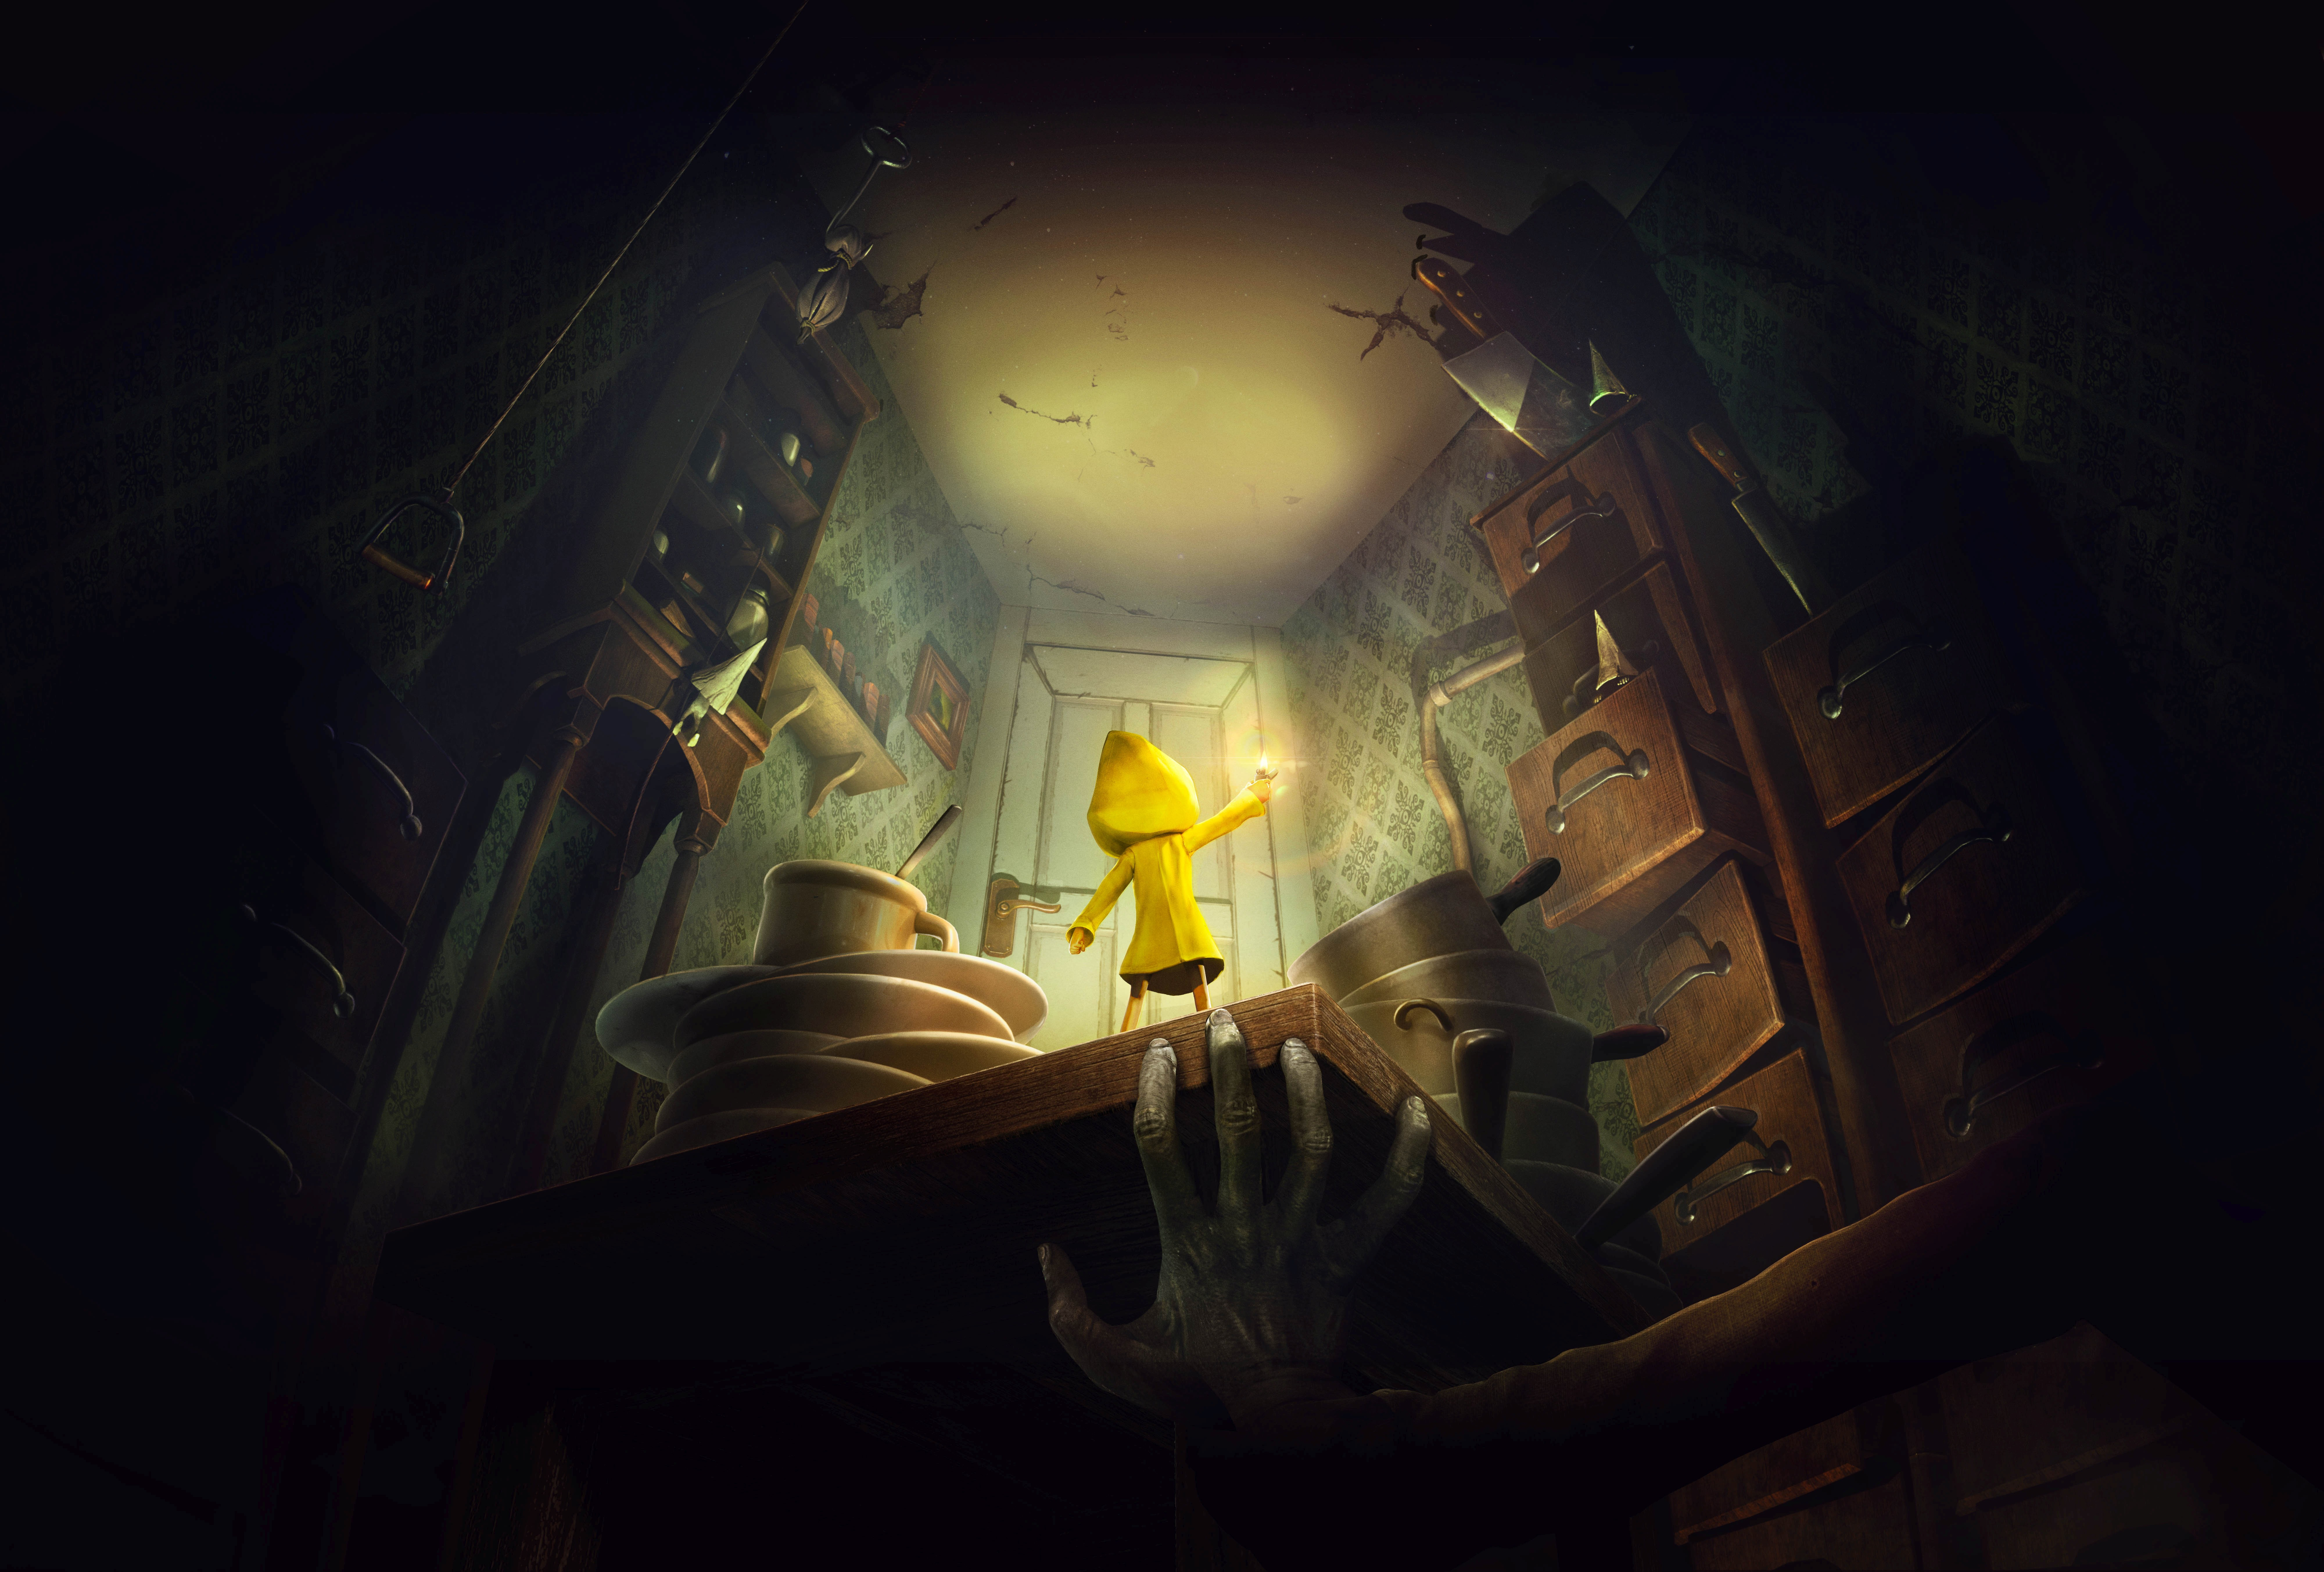 Little-Nightmares_2016_08-17-16_007